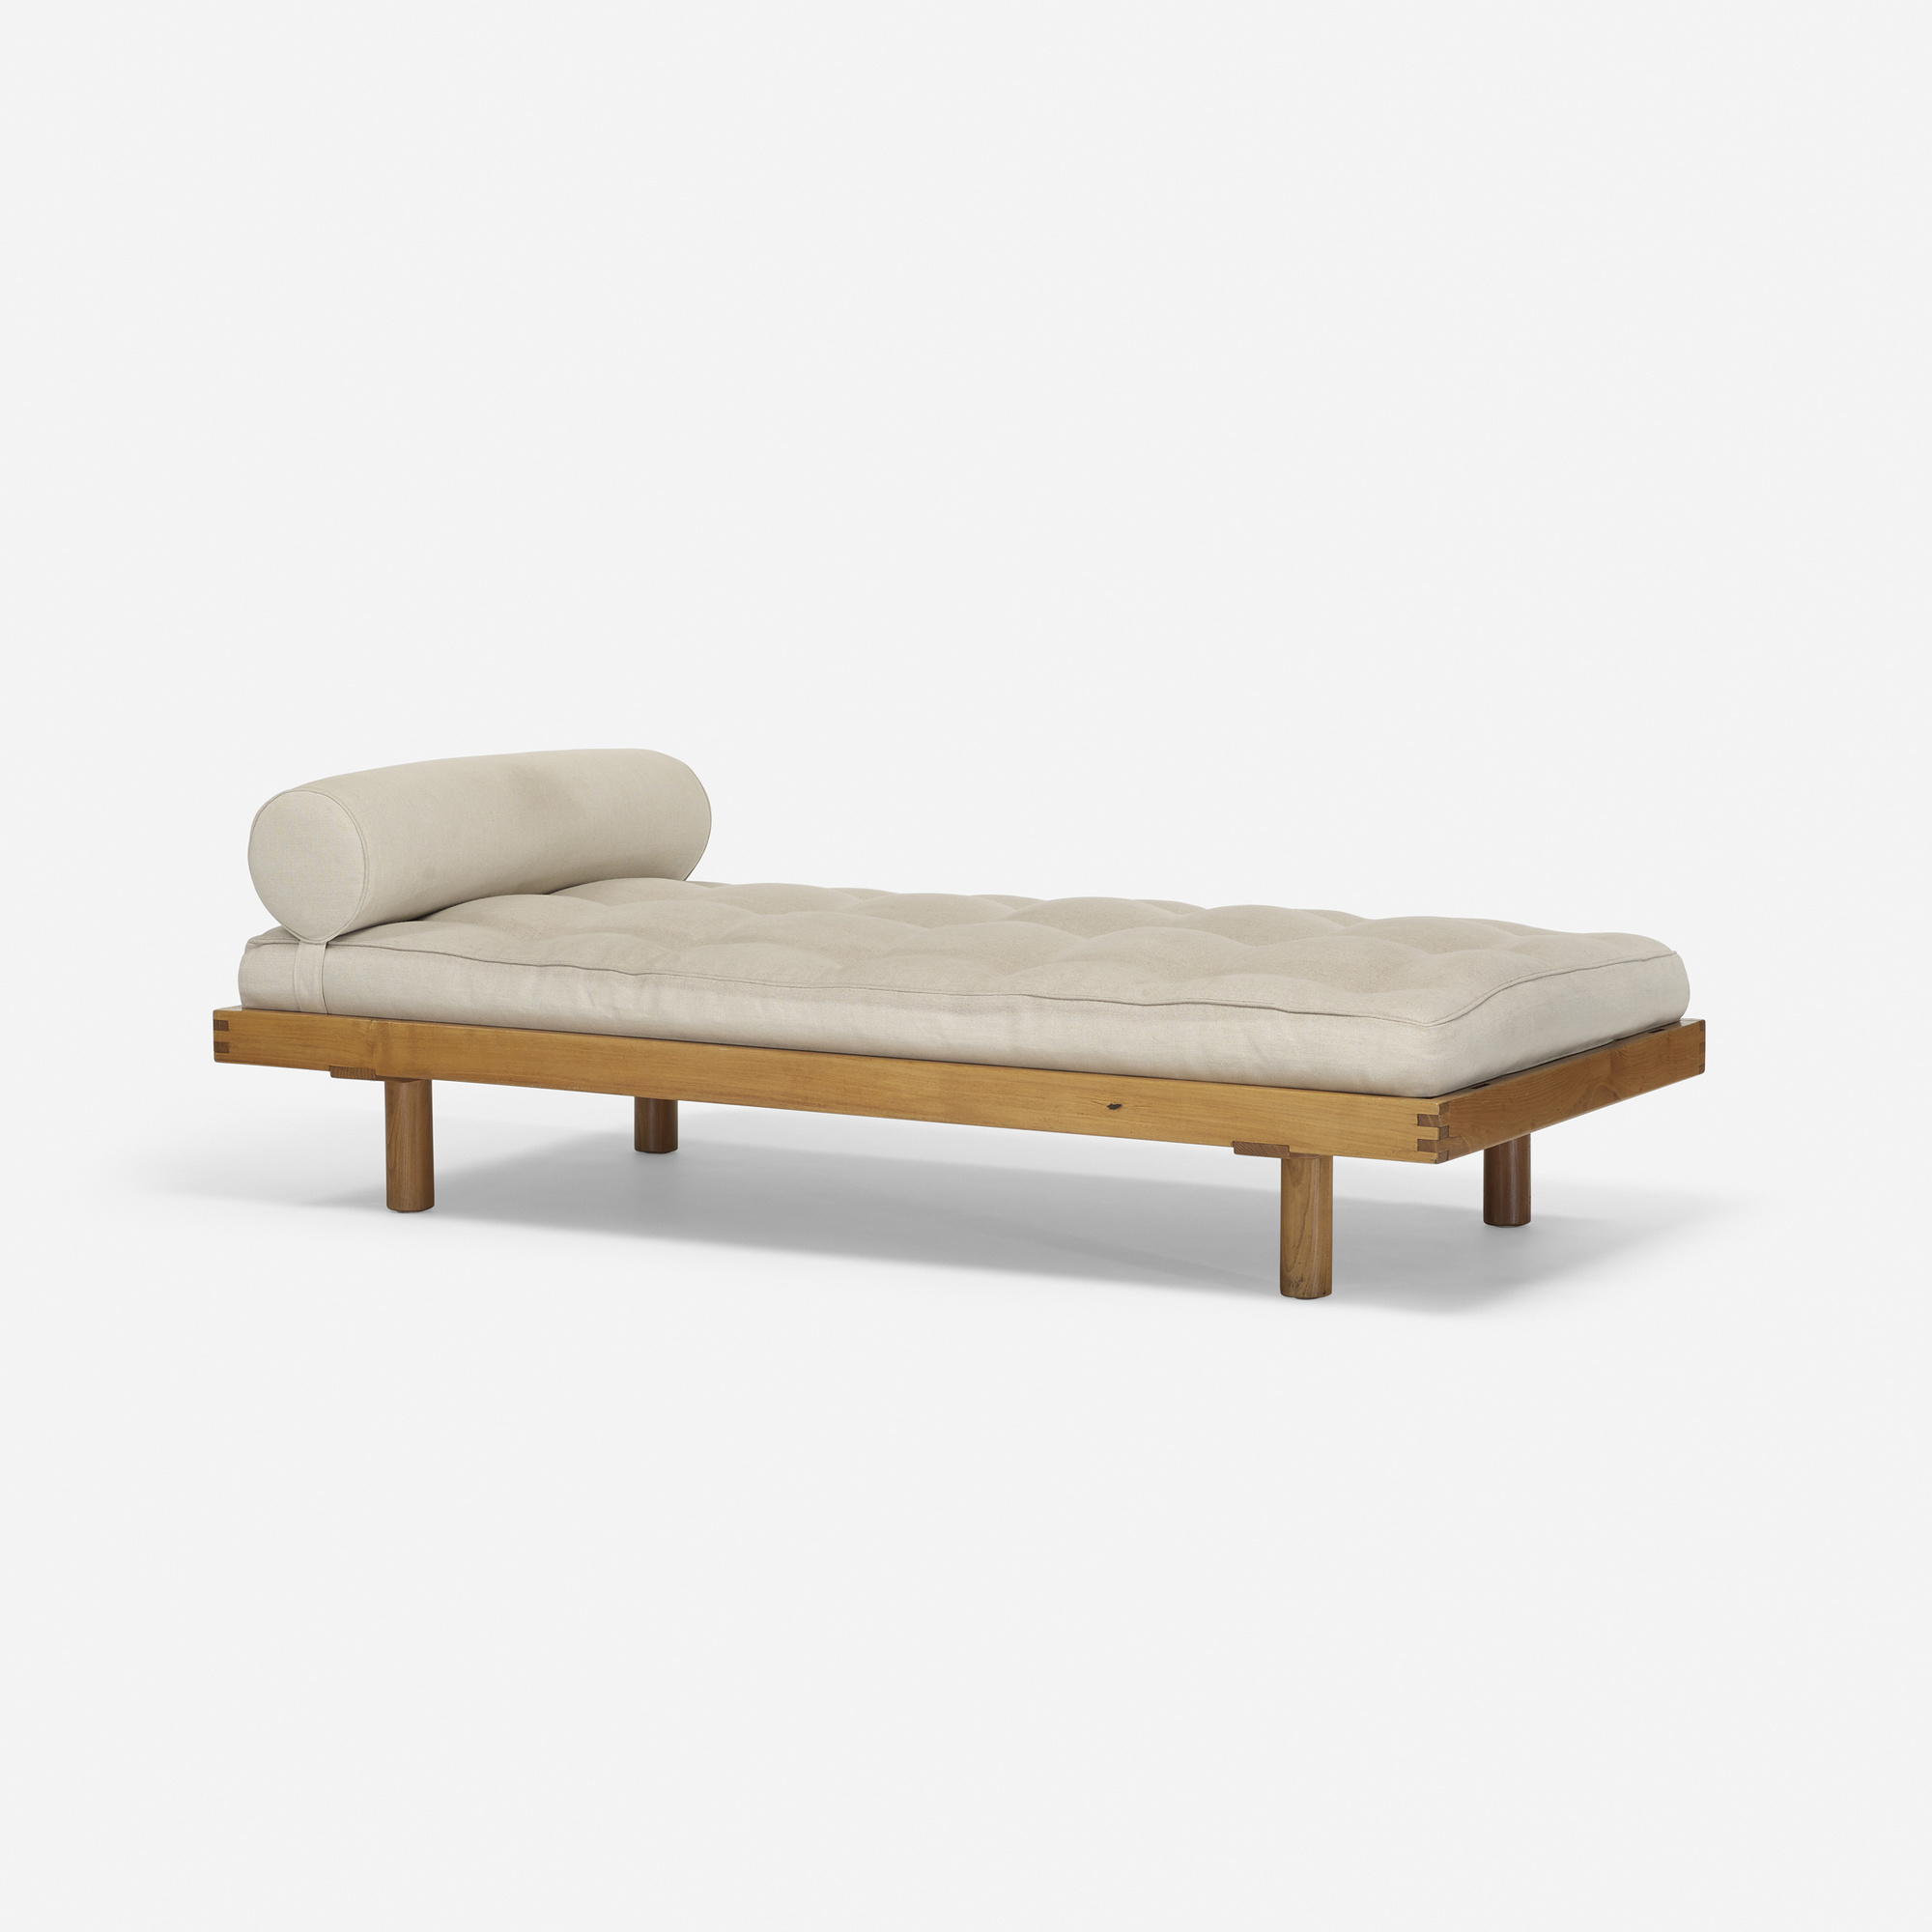 327 Pierre Chapo Daybed